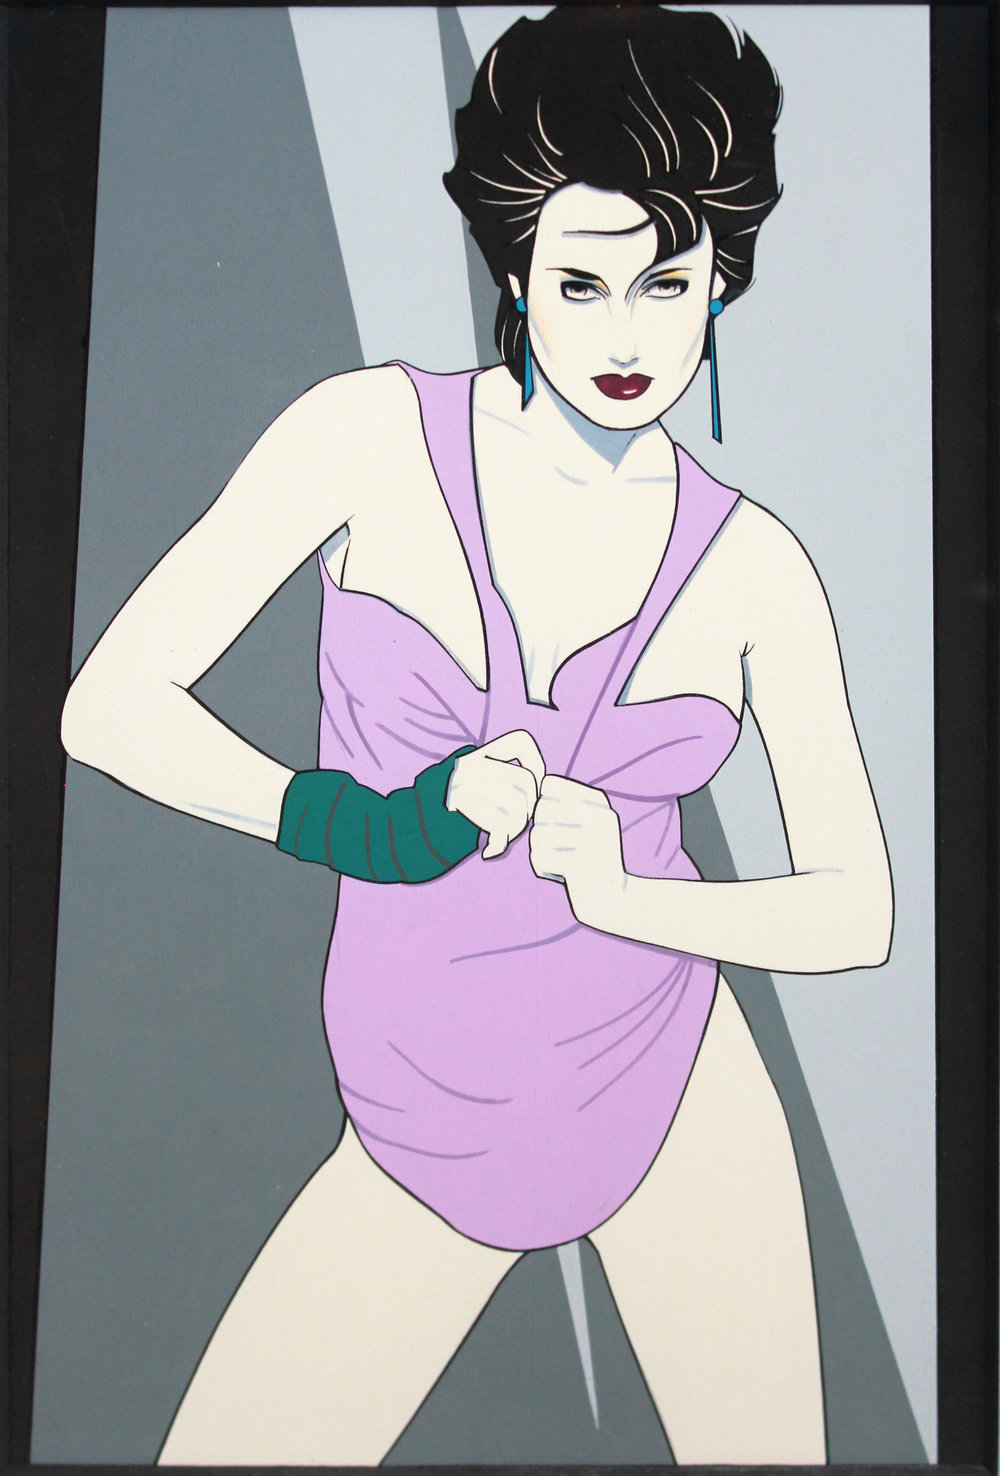 "Patrick Nagel  Untitled, c. 1980's Mixed media on illustration board Unsigned; Playboy Reproduction stamps on verso ""PLAYBOY'S ARTWORK REPRODUCTION PROHIBITED WITHOUT PLAYBOY'S PERMISSION"" stamp Image: 13 x 9 inches; Framed: 22.5 x 17.5 inches Estimate: $14,000/$18,000"